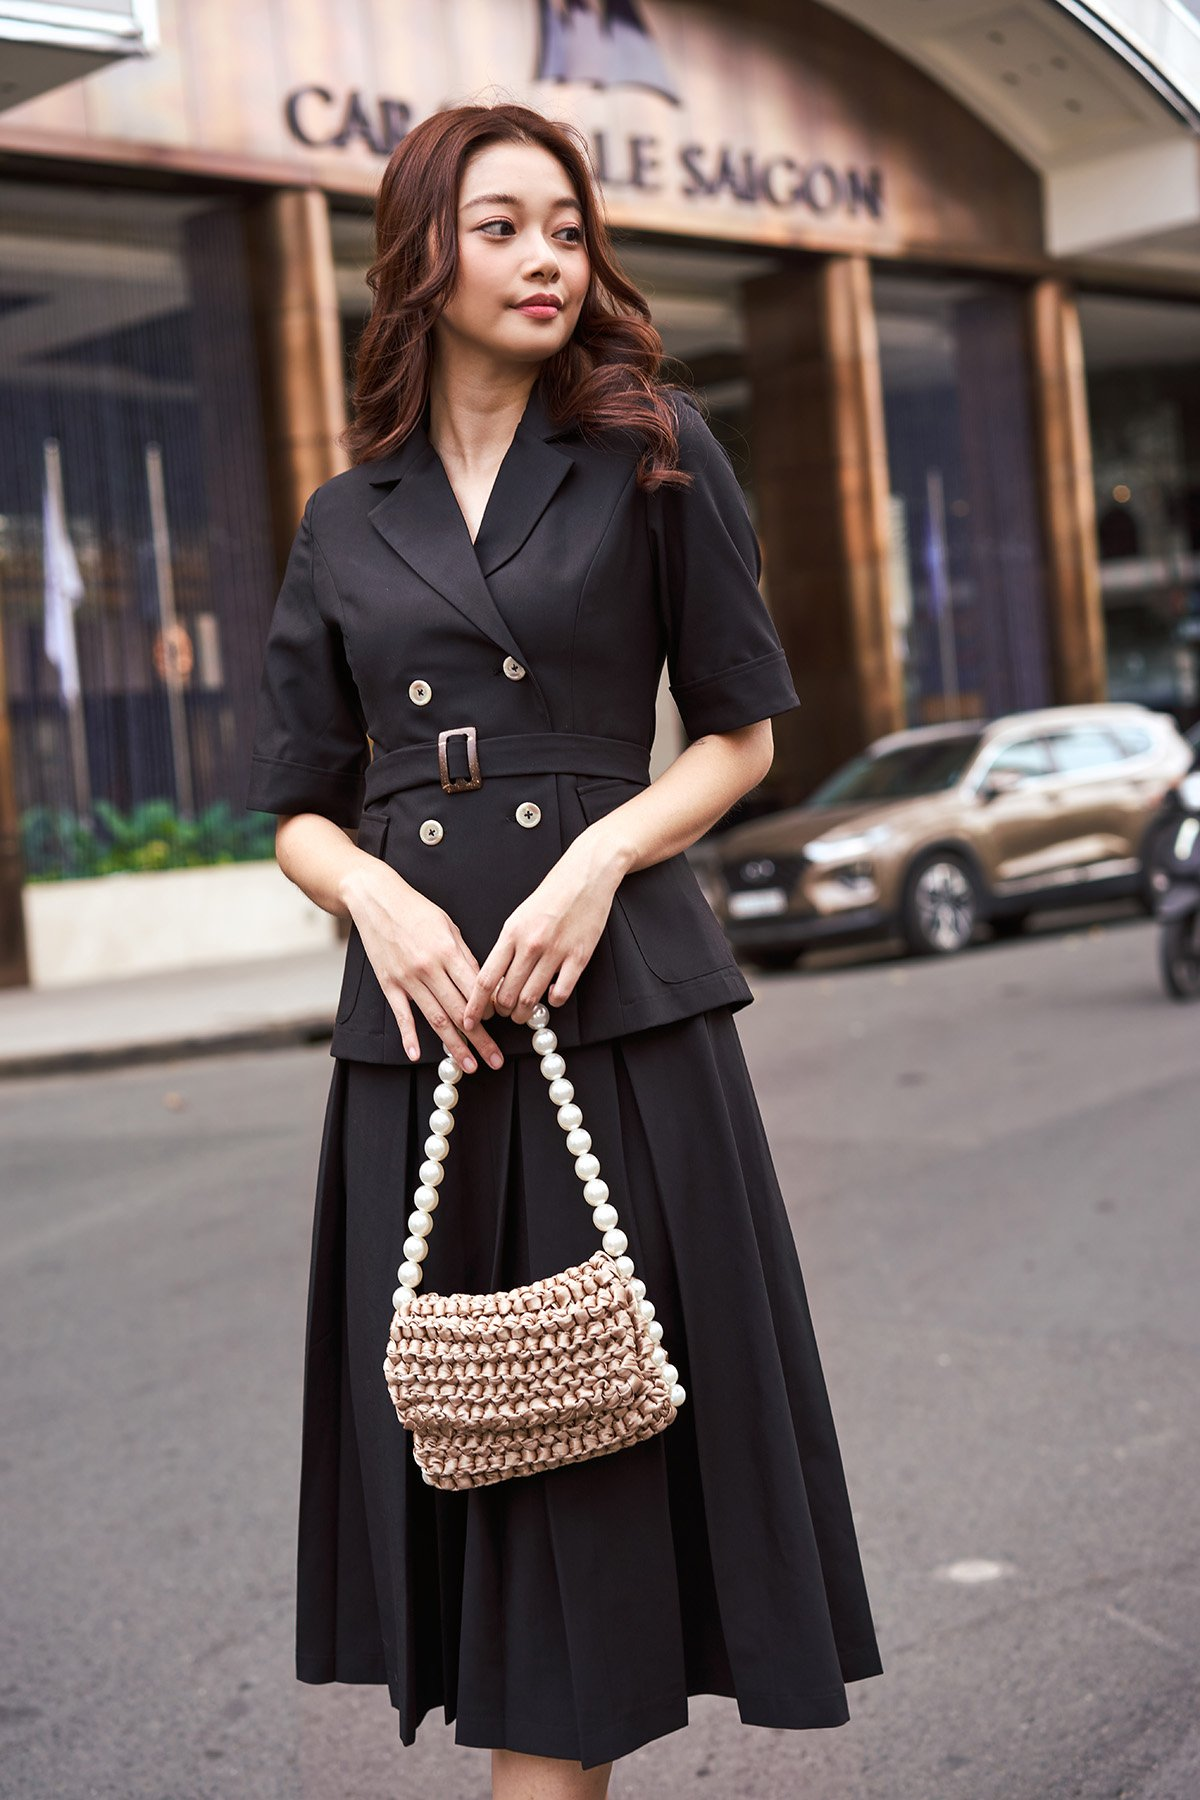 Áo blazer đen tay lửng Fitted Black Blazer Top With Pockets